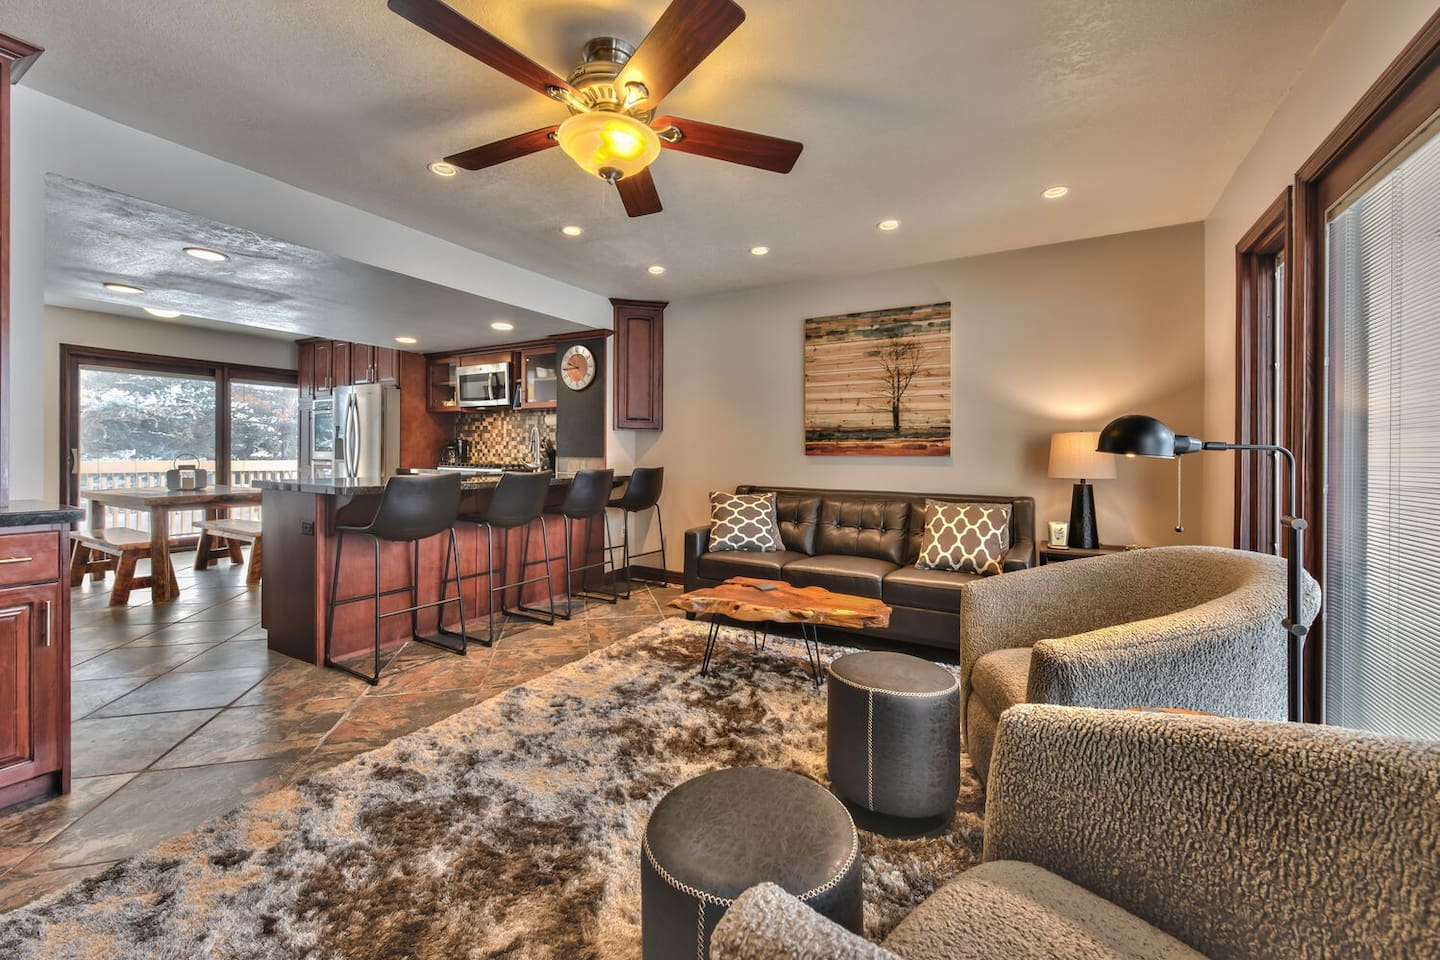 Completely Remodeled Condo with Three Levels - Main Level Living Room, Kitchen and Dining Area